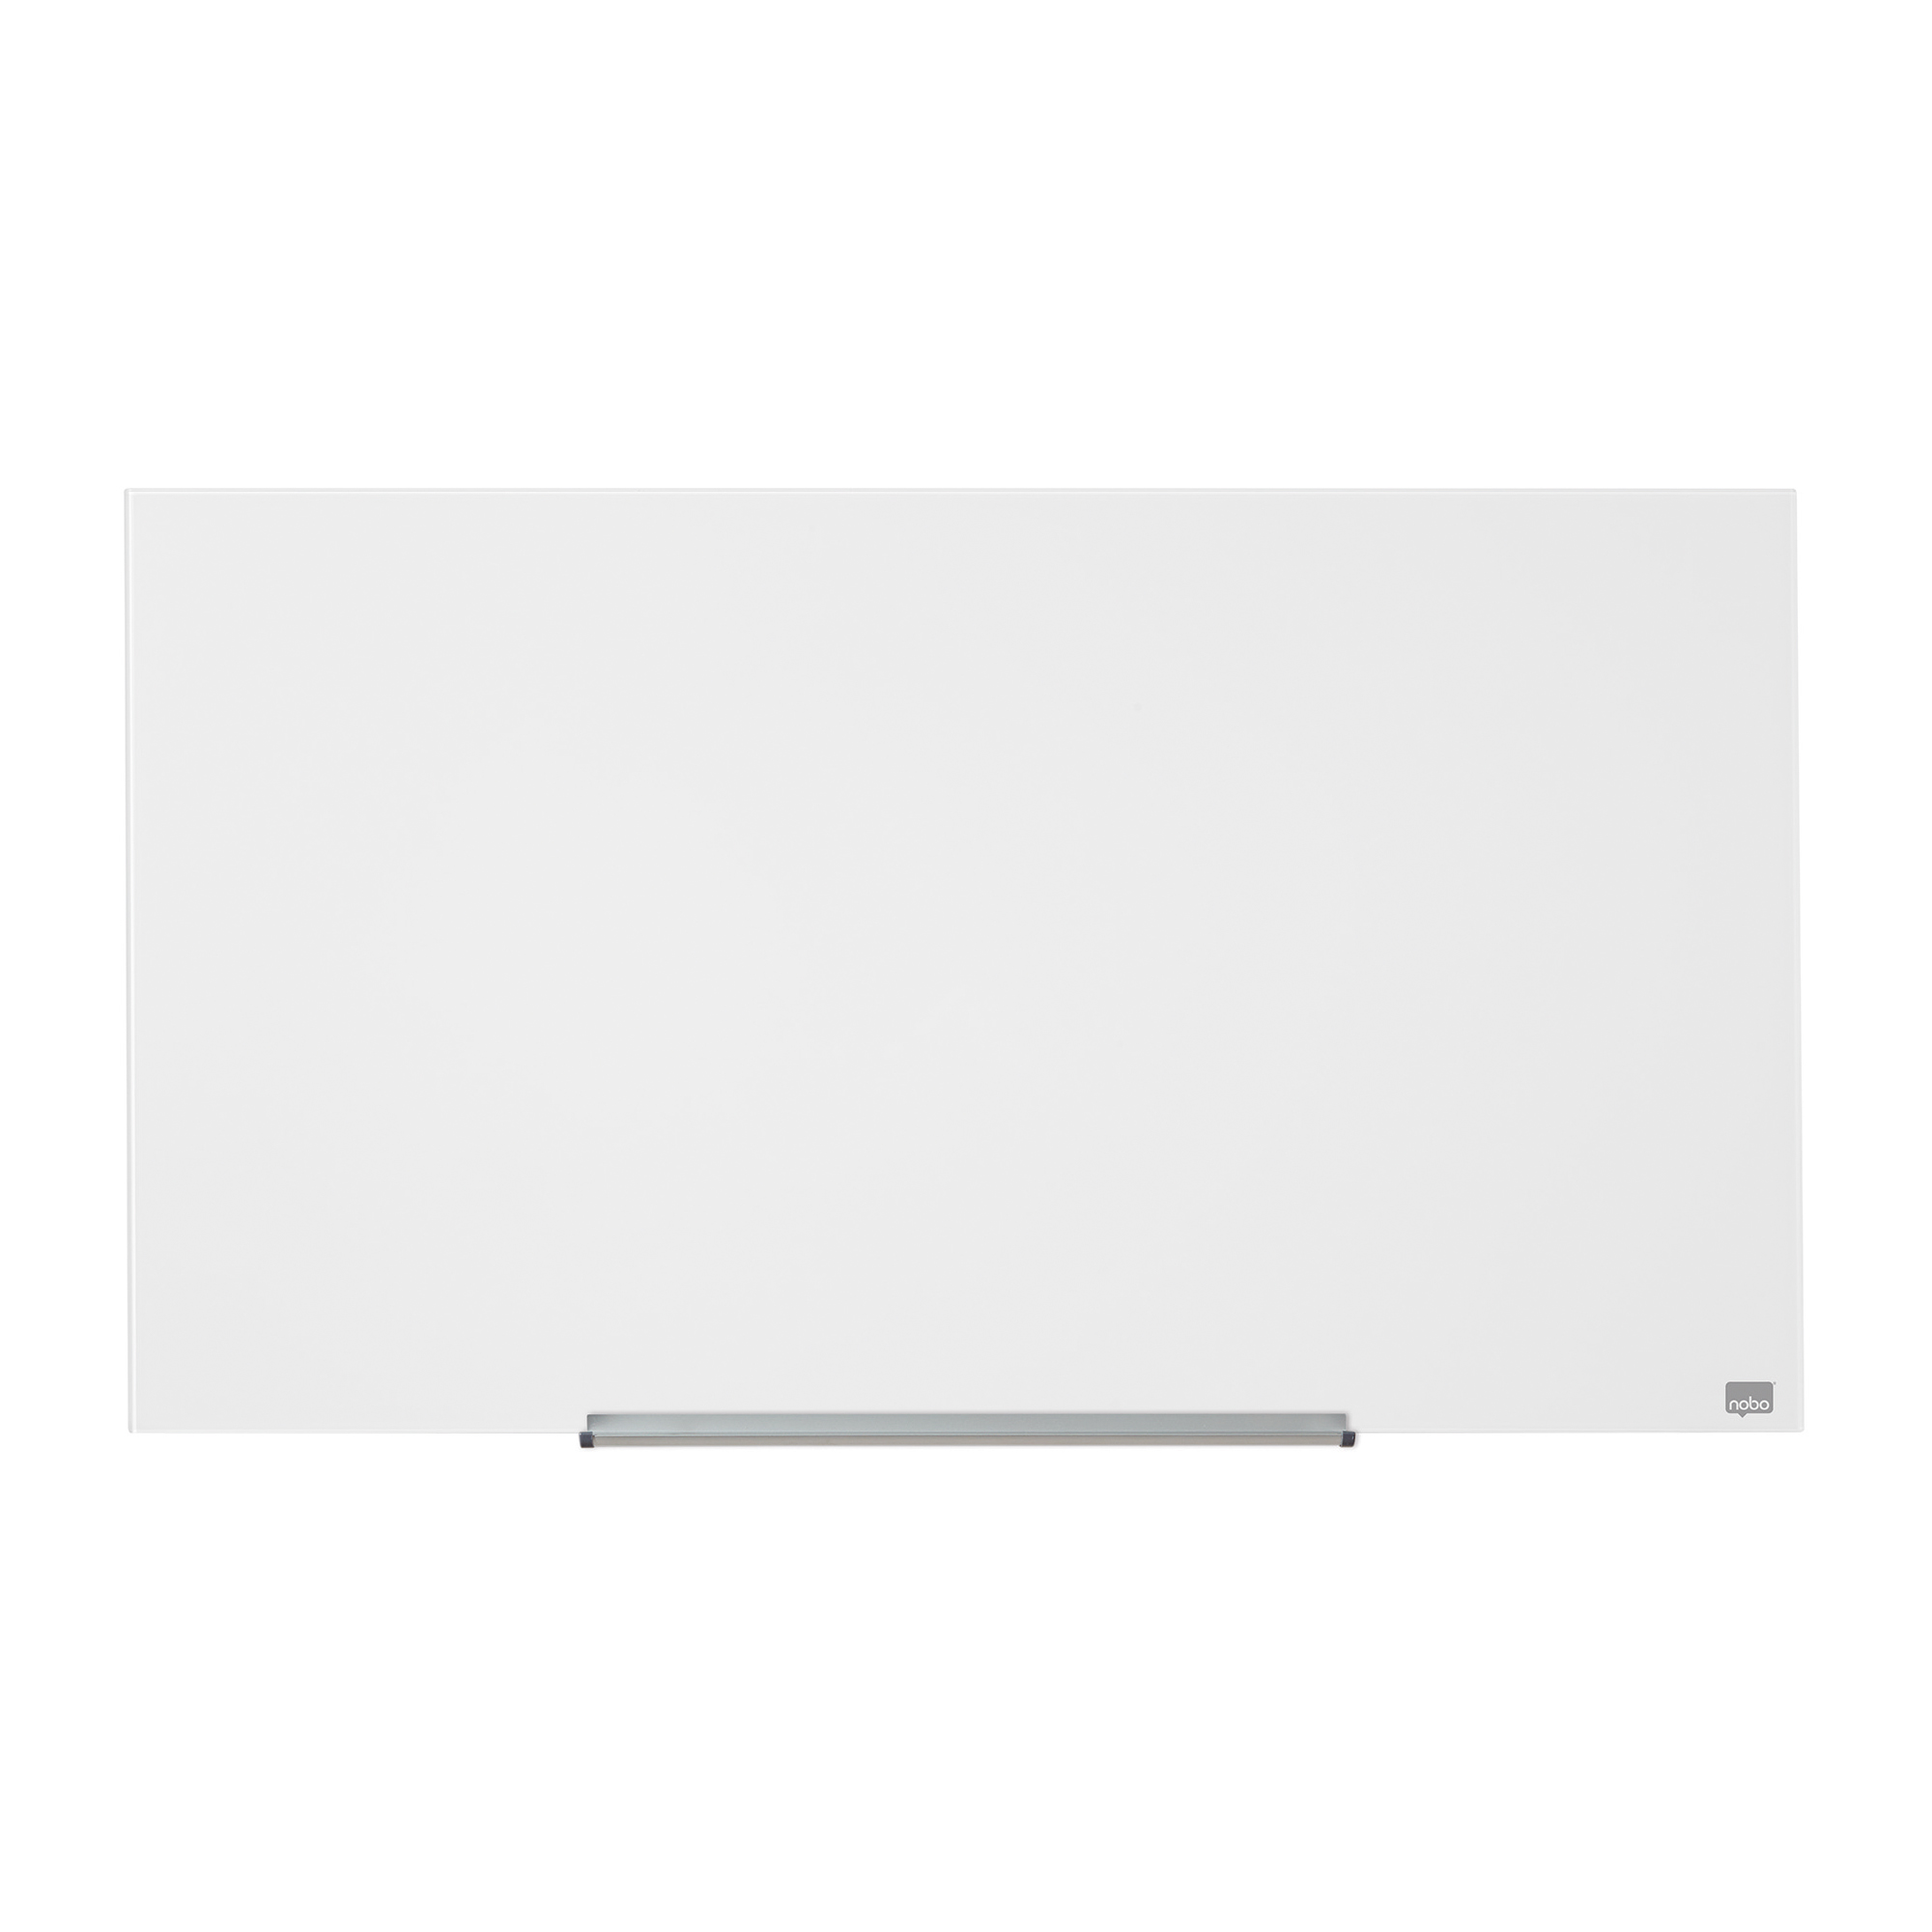 Magnetic Nobo Widescreen 85 inch WBrd Glass Magnetic Scratch-Resistant Fixings Inc W1900xH1000mm Wht Ref 1905178